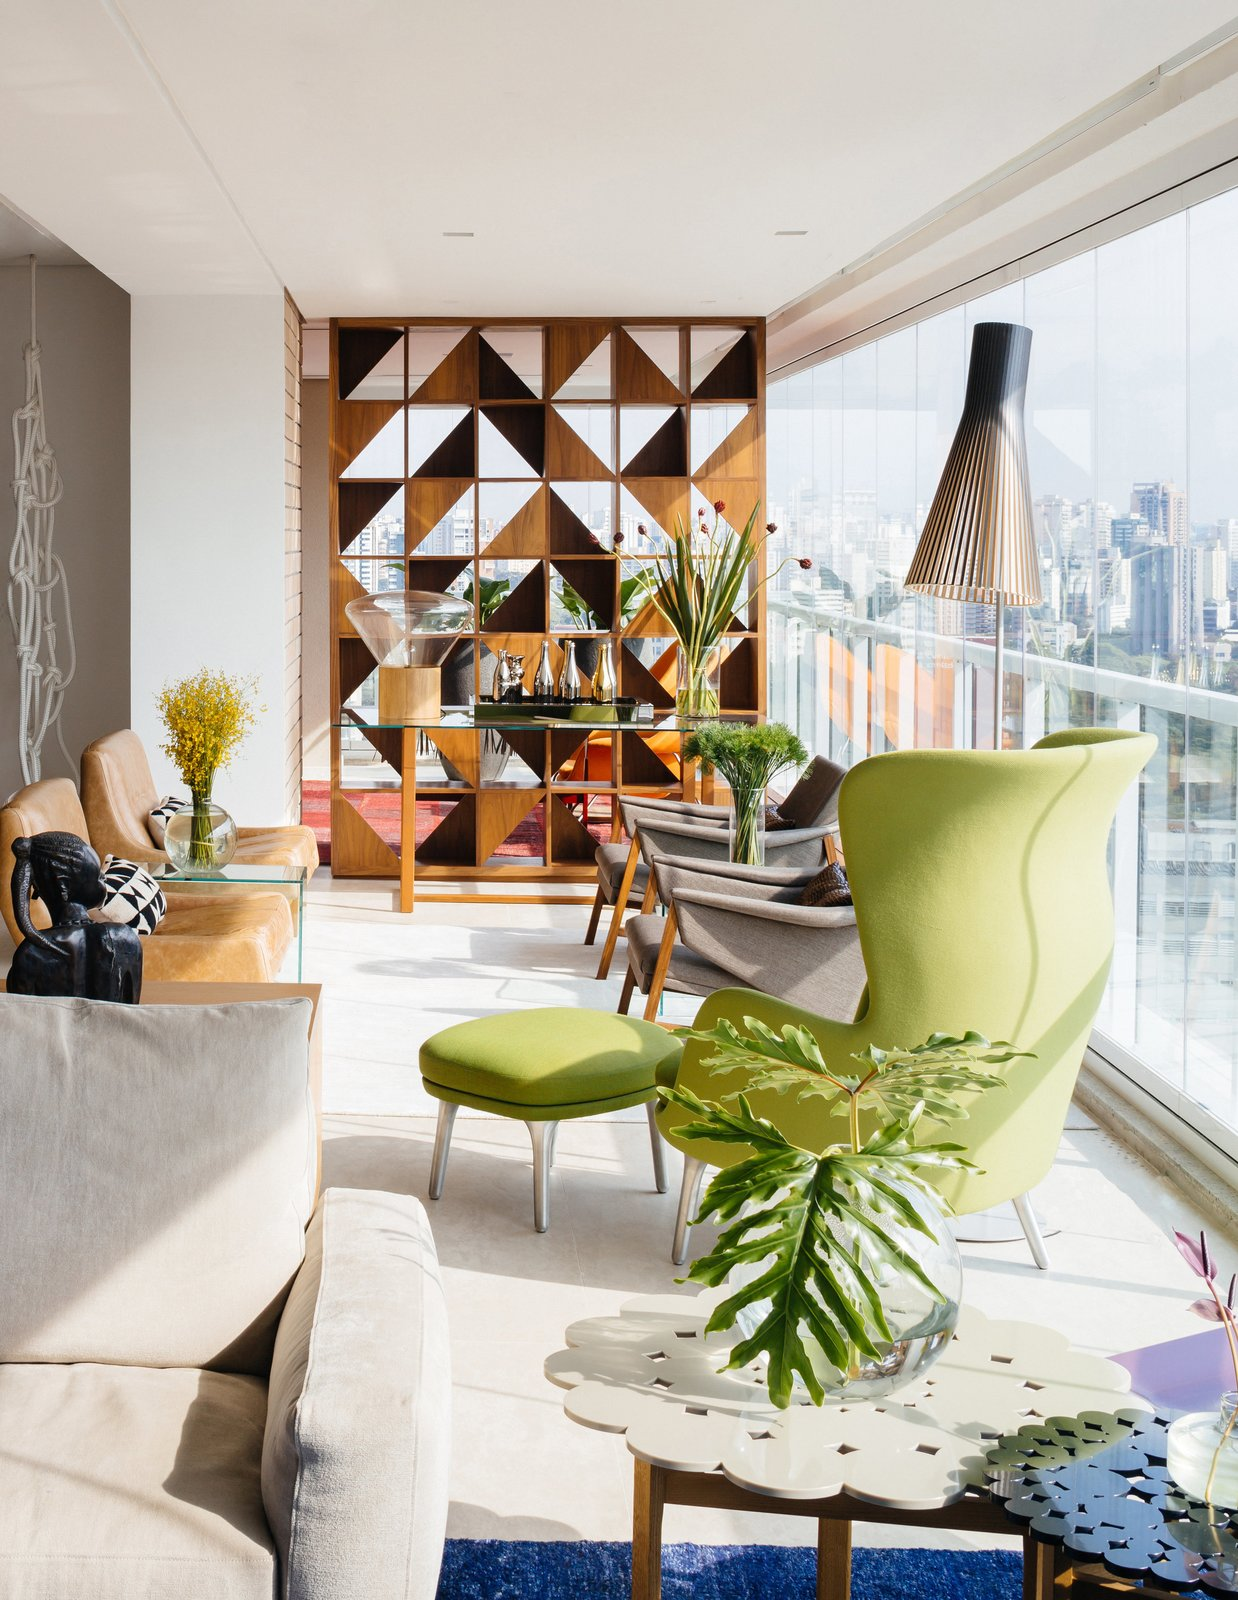 FCstudio updated the 5,000-square-foot apartment by removing several walls in central areas to clarify views and simplify the overall floor plan. The firm also custom-designed the Brazilian walnut room divider with a striking geometric pattern that allows light to traverse throughout the living area. Tagged: Living Room, Chair, Sofa, Recliner, Coffee Tables, End Tables, Lamps, Ceiling Lighting, Rug Floor, Recessed Lighting, and Floor Lighting.  Photo 3 of 9 in Overlooking a Niemeyer Masterpiece, This Flat is Filled with Brazilian Modern Gems